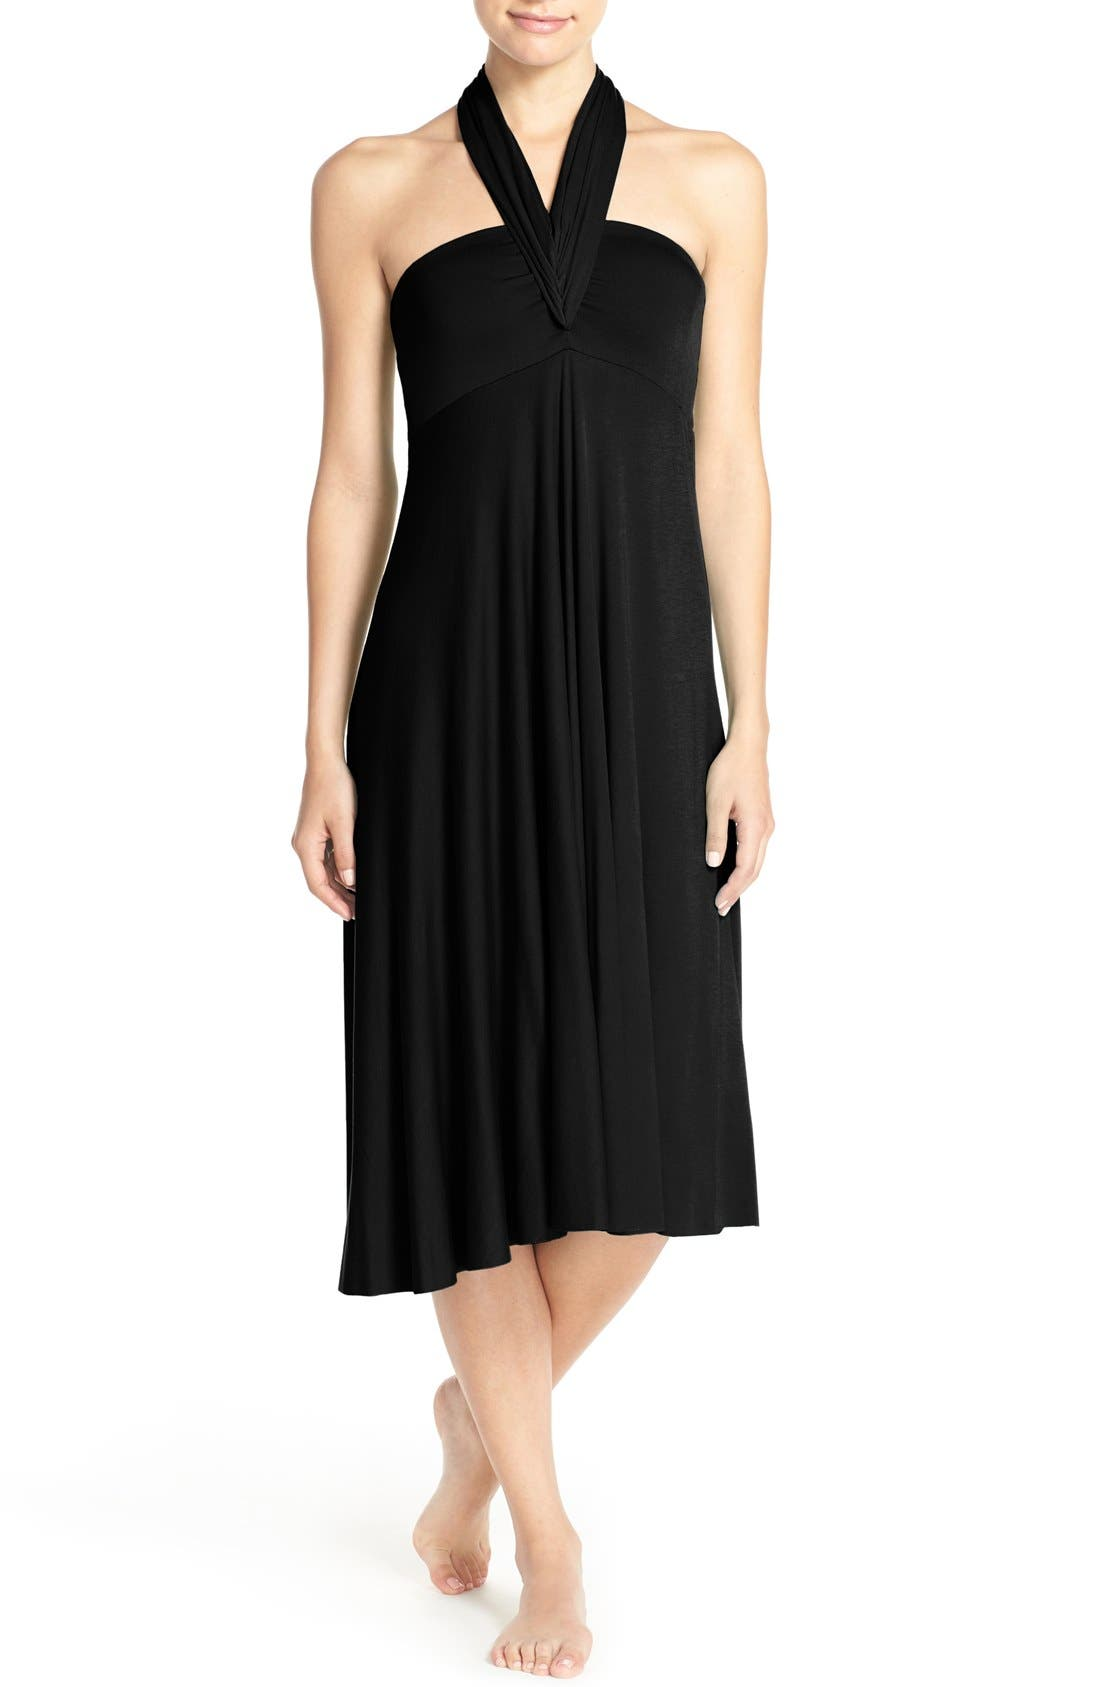 Alternate Image 1 Selected - Elan Convertible Cover-Up Dress